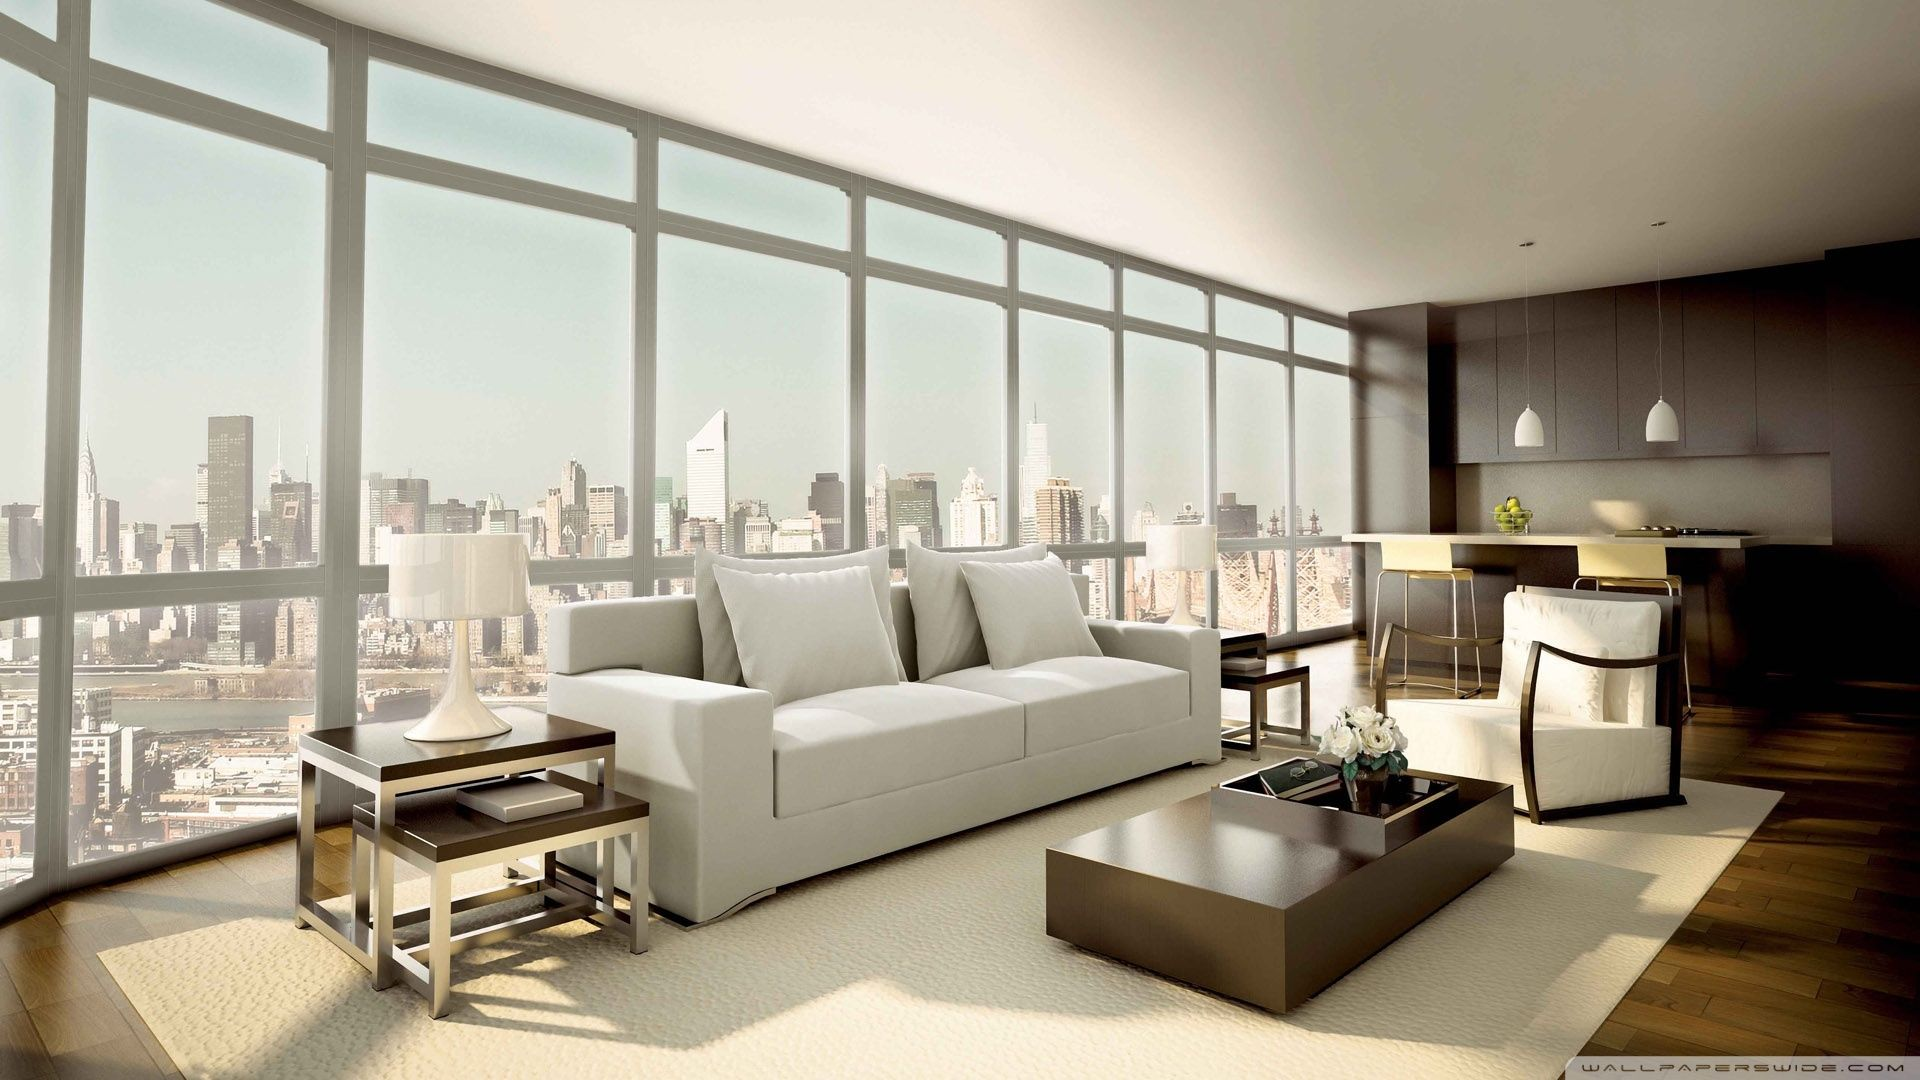 Minimalist Interior Design Is A Fantastic Hd Wallpaper For Your Pc Or Mac And Modern Living Room Interior Wallpaper Interior Design Living Room Design Modern